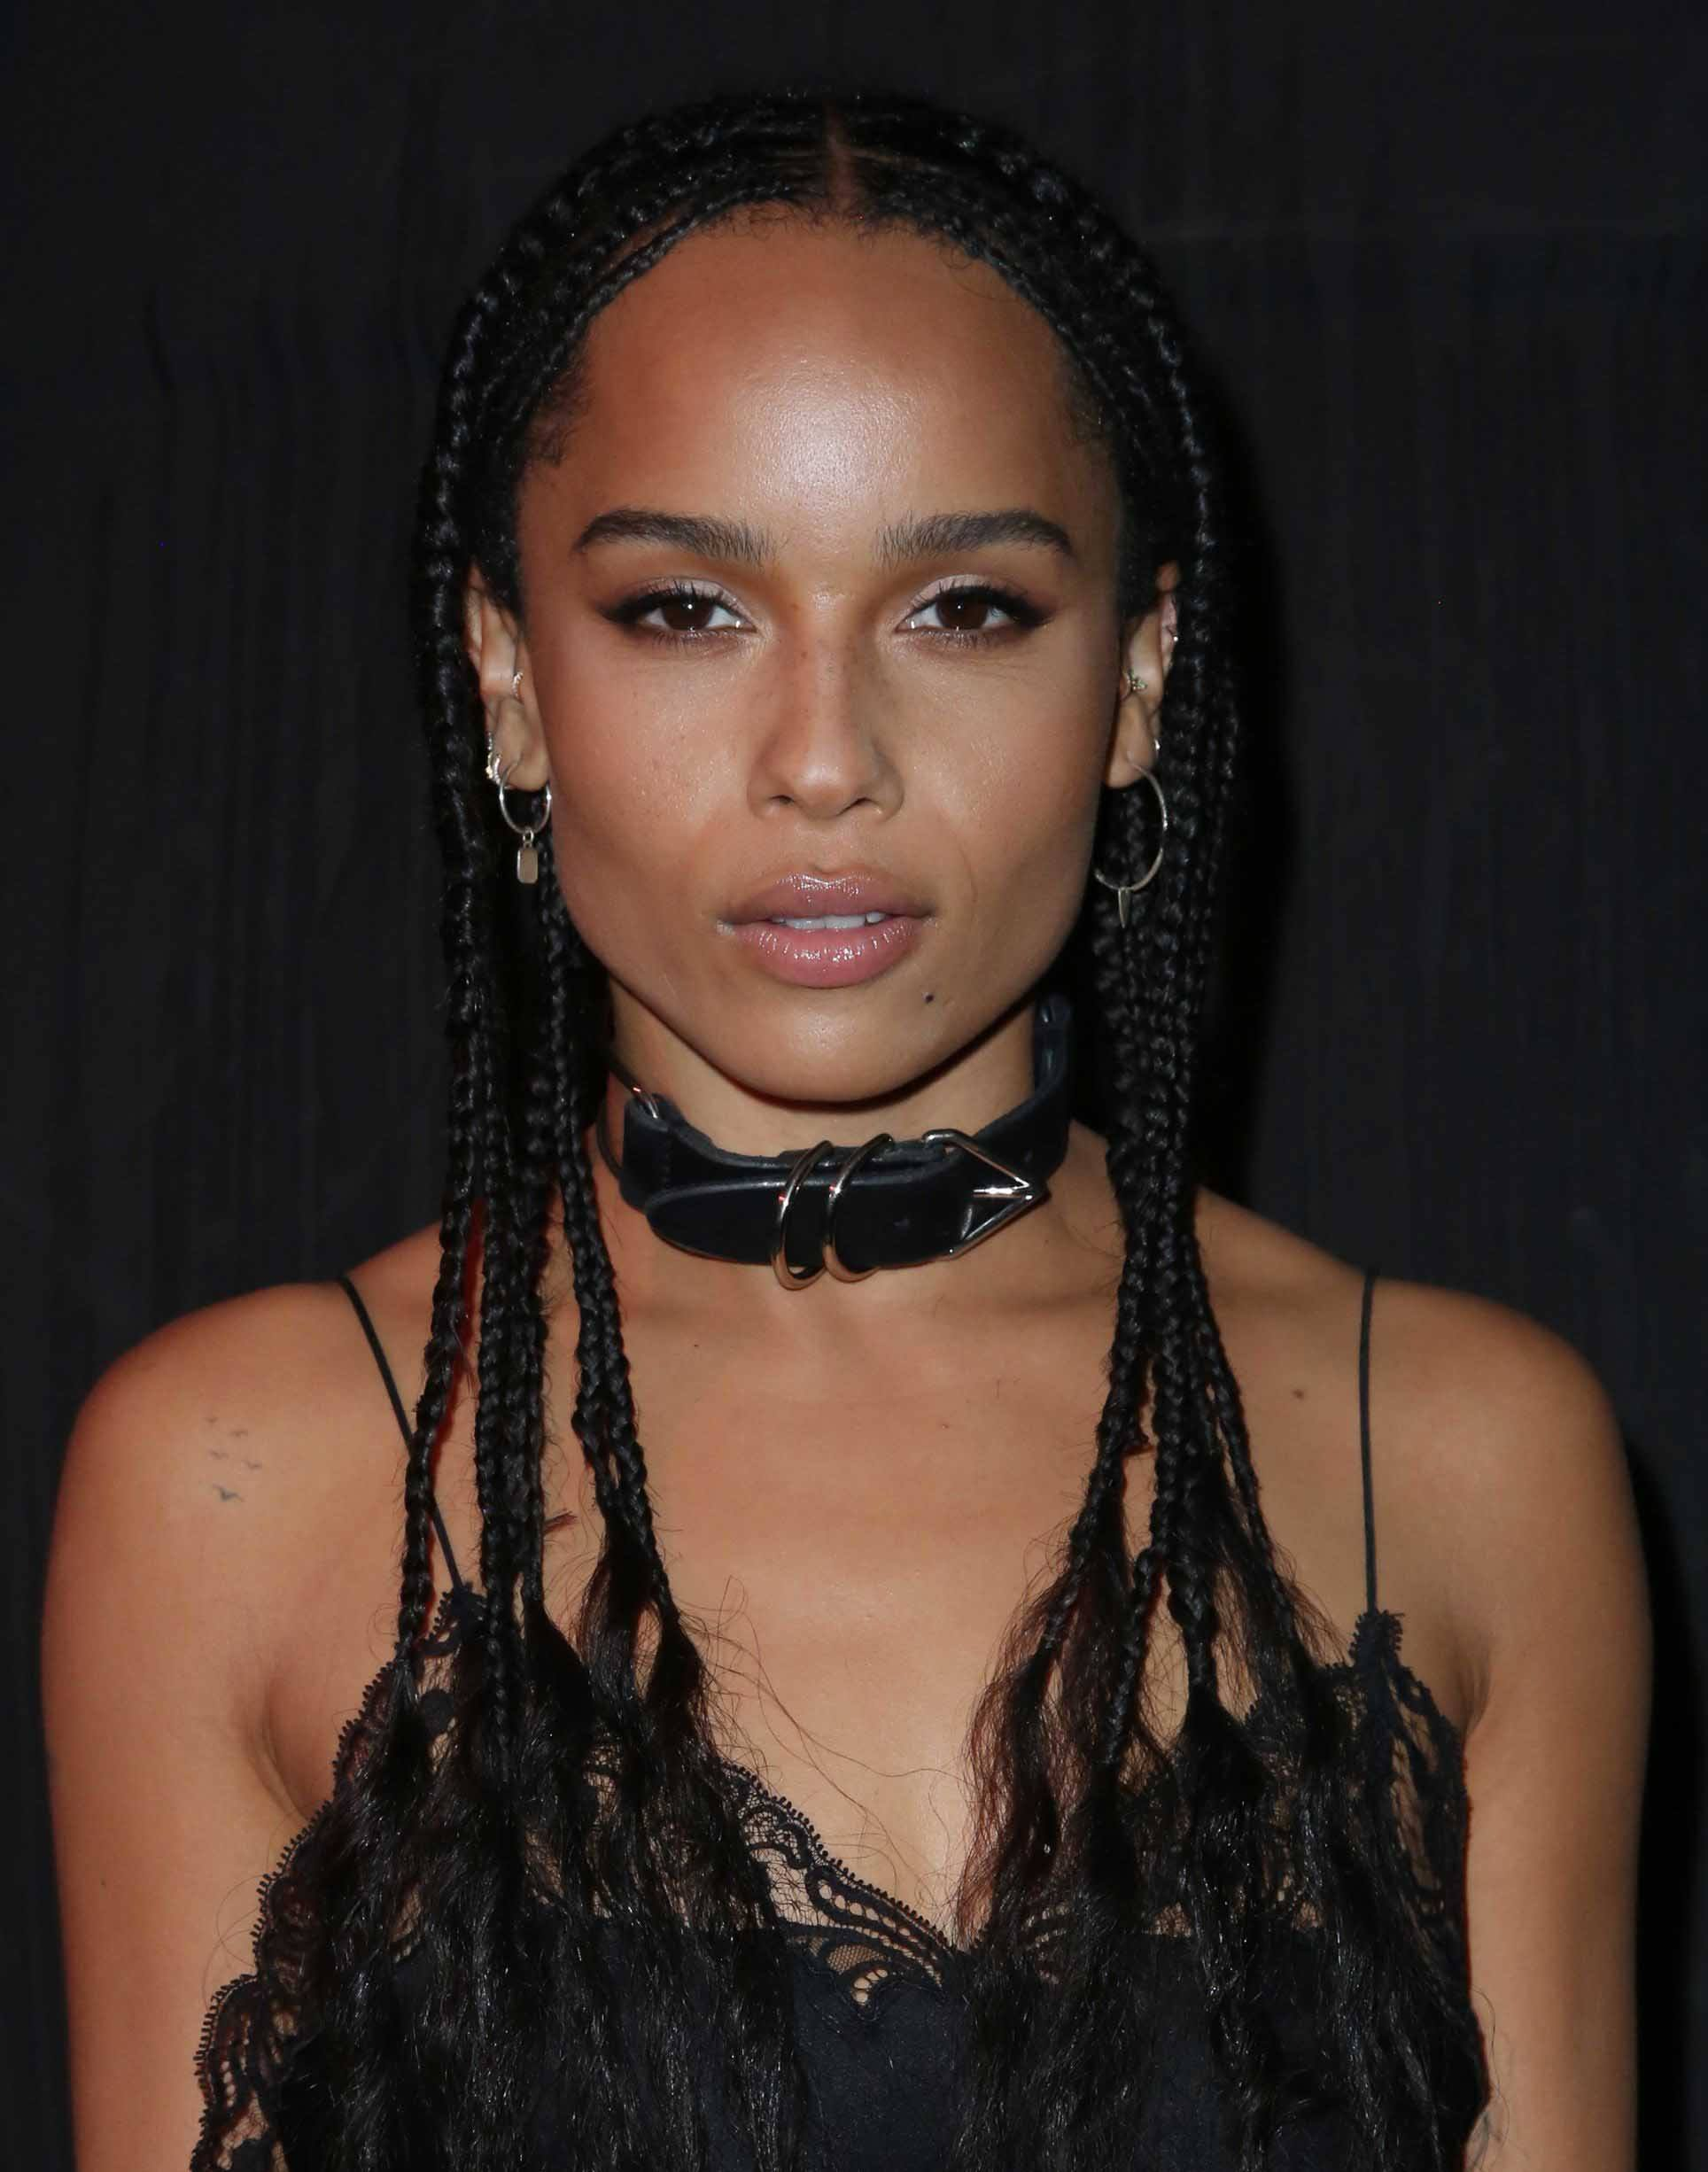 celebrity hair: All Things Hair - IMAGE - 2016 Zoe Kravitz long braids